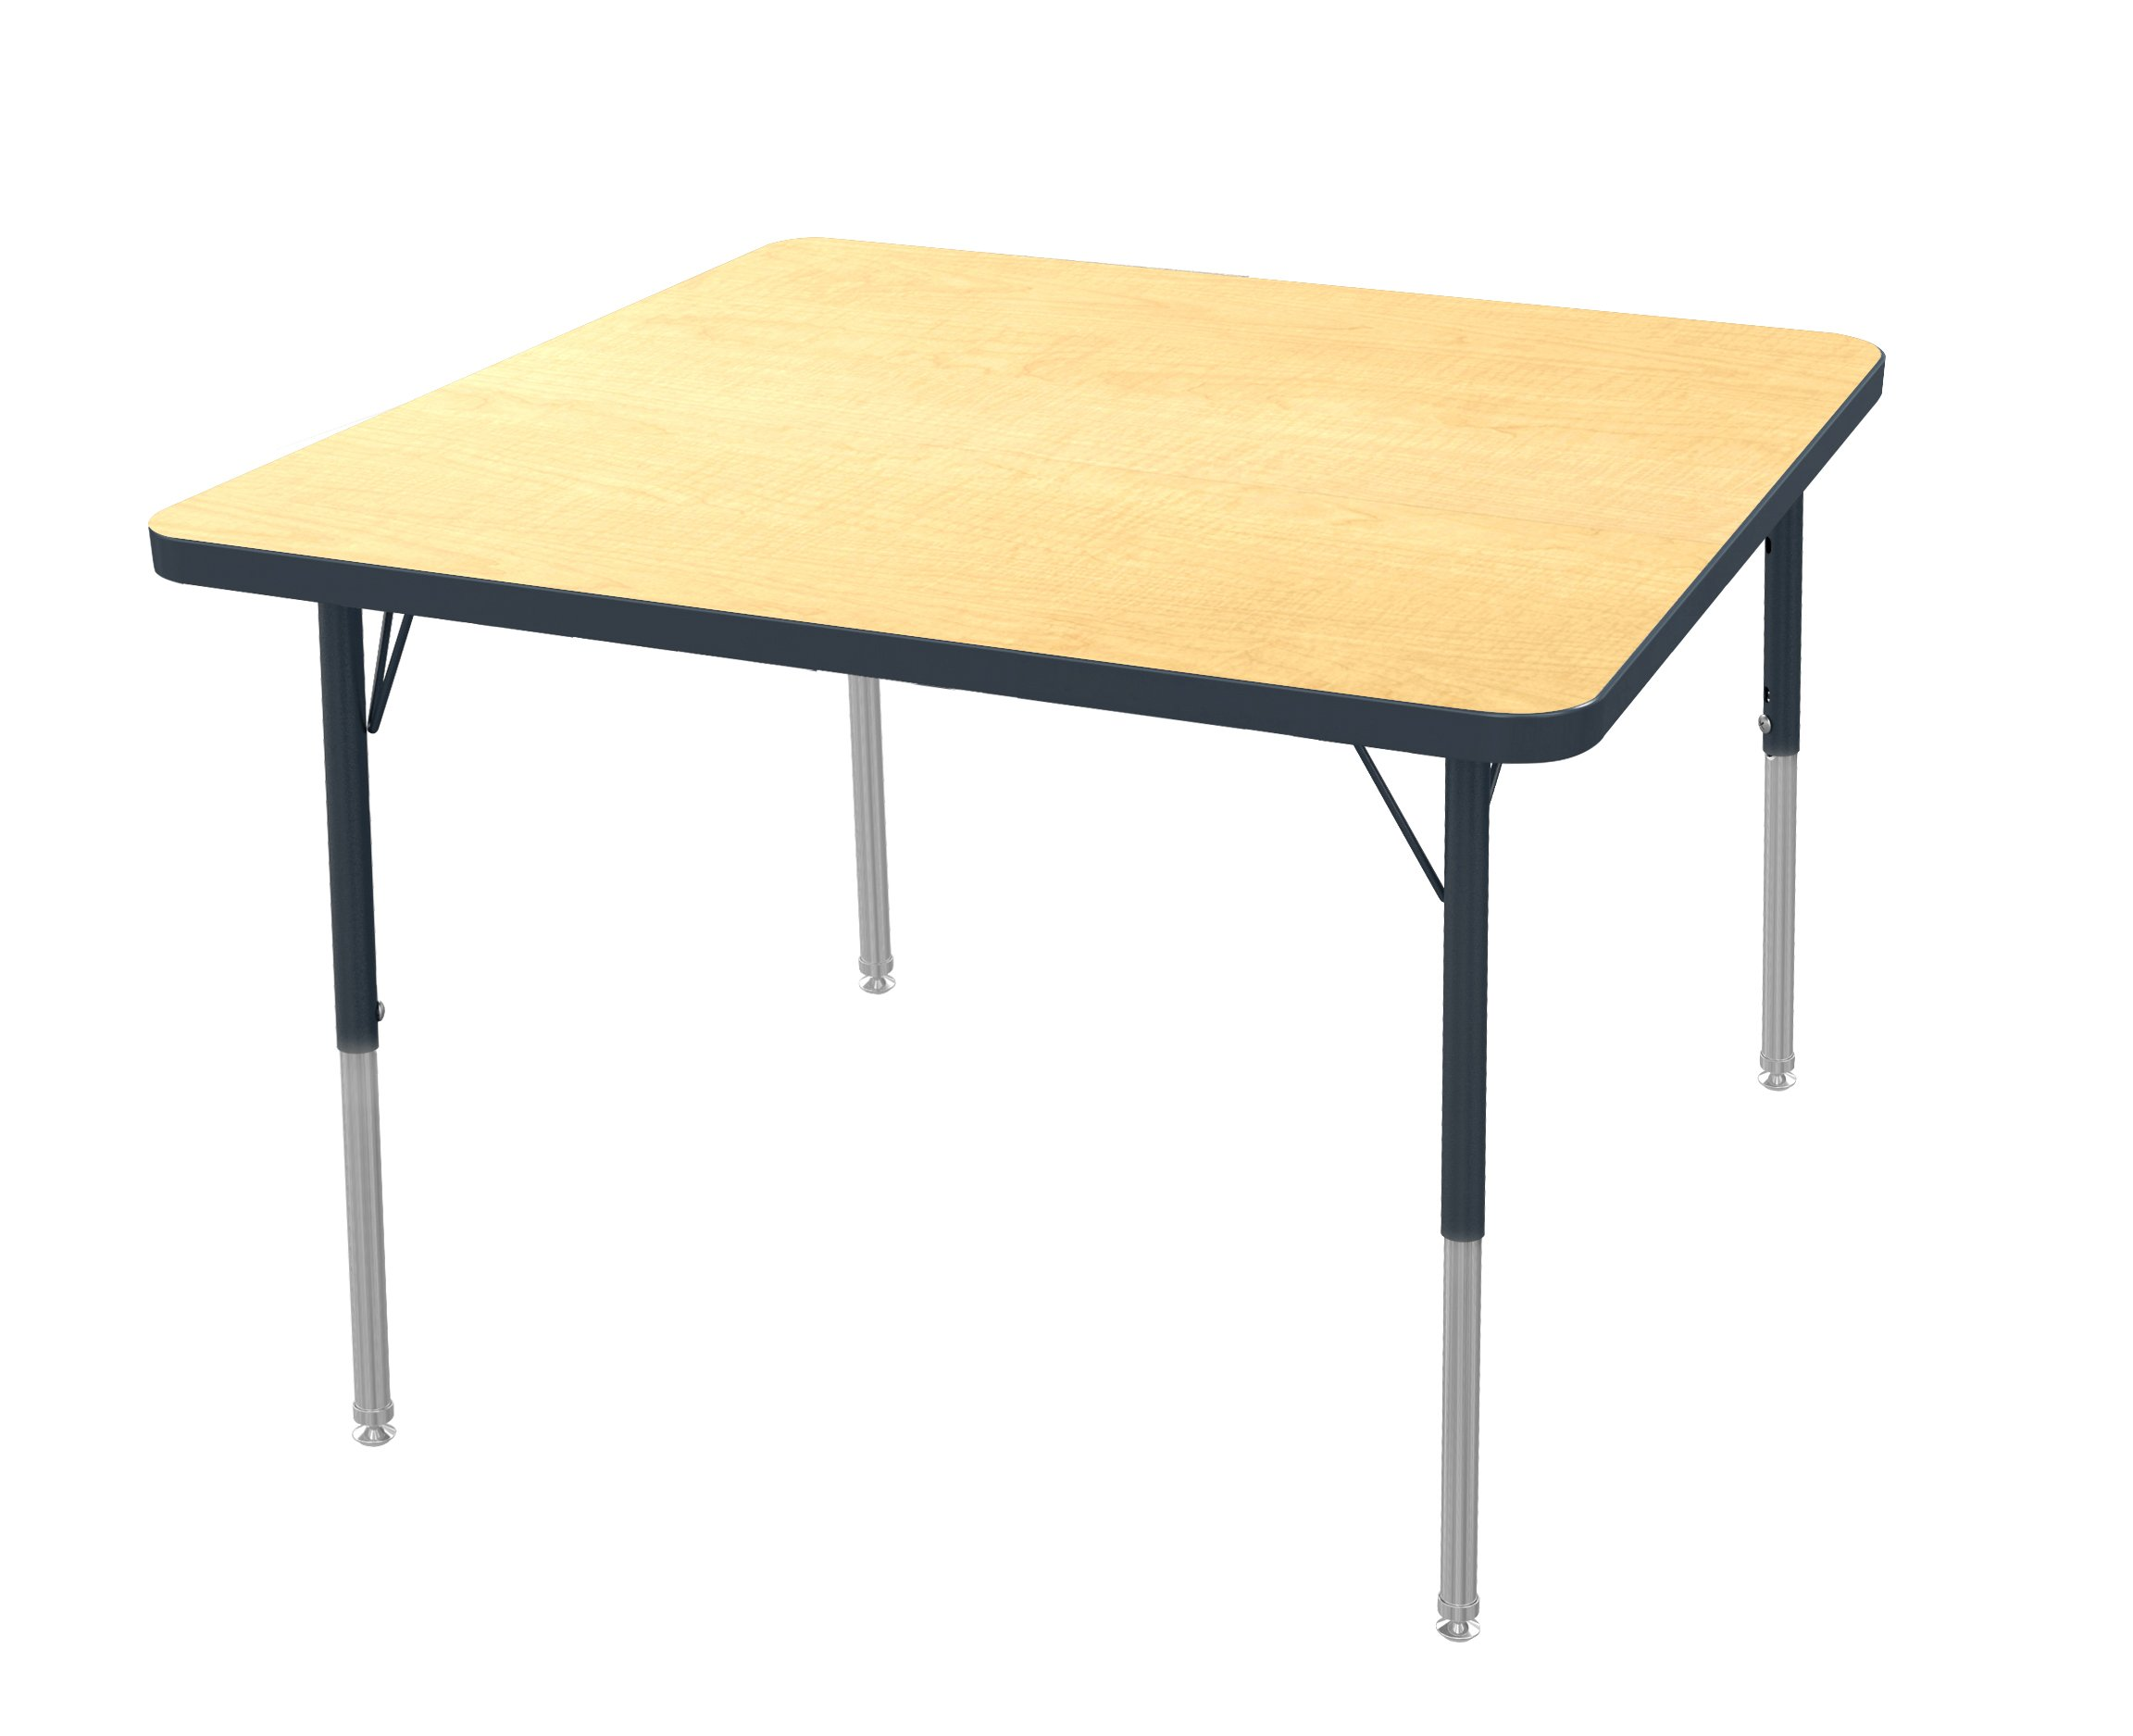 Marco Group Square Adjustable Activity Table, 48'' Width x 48'' Length, Maple, Standard Legs